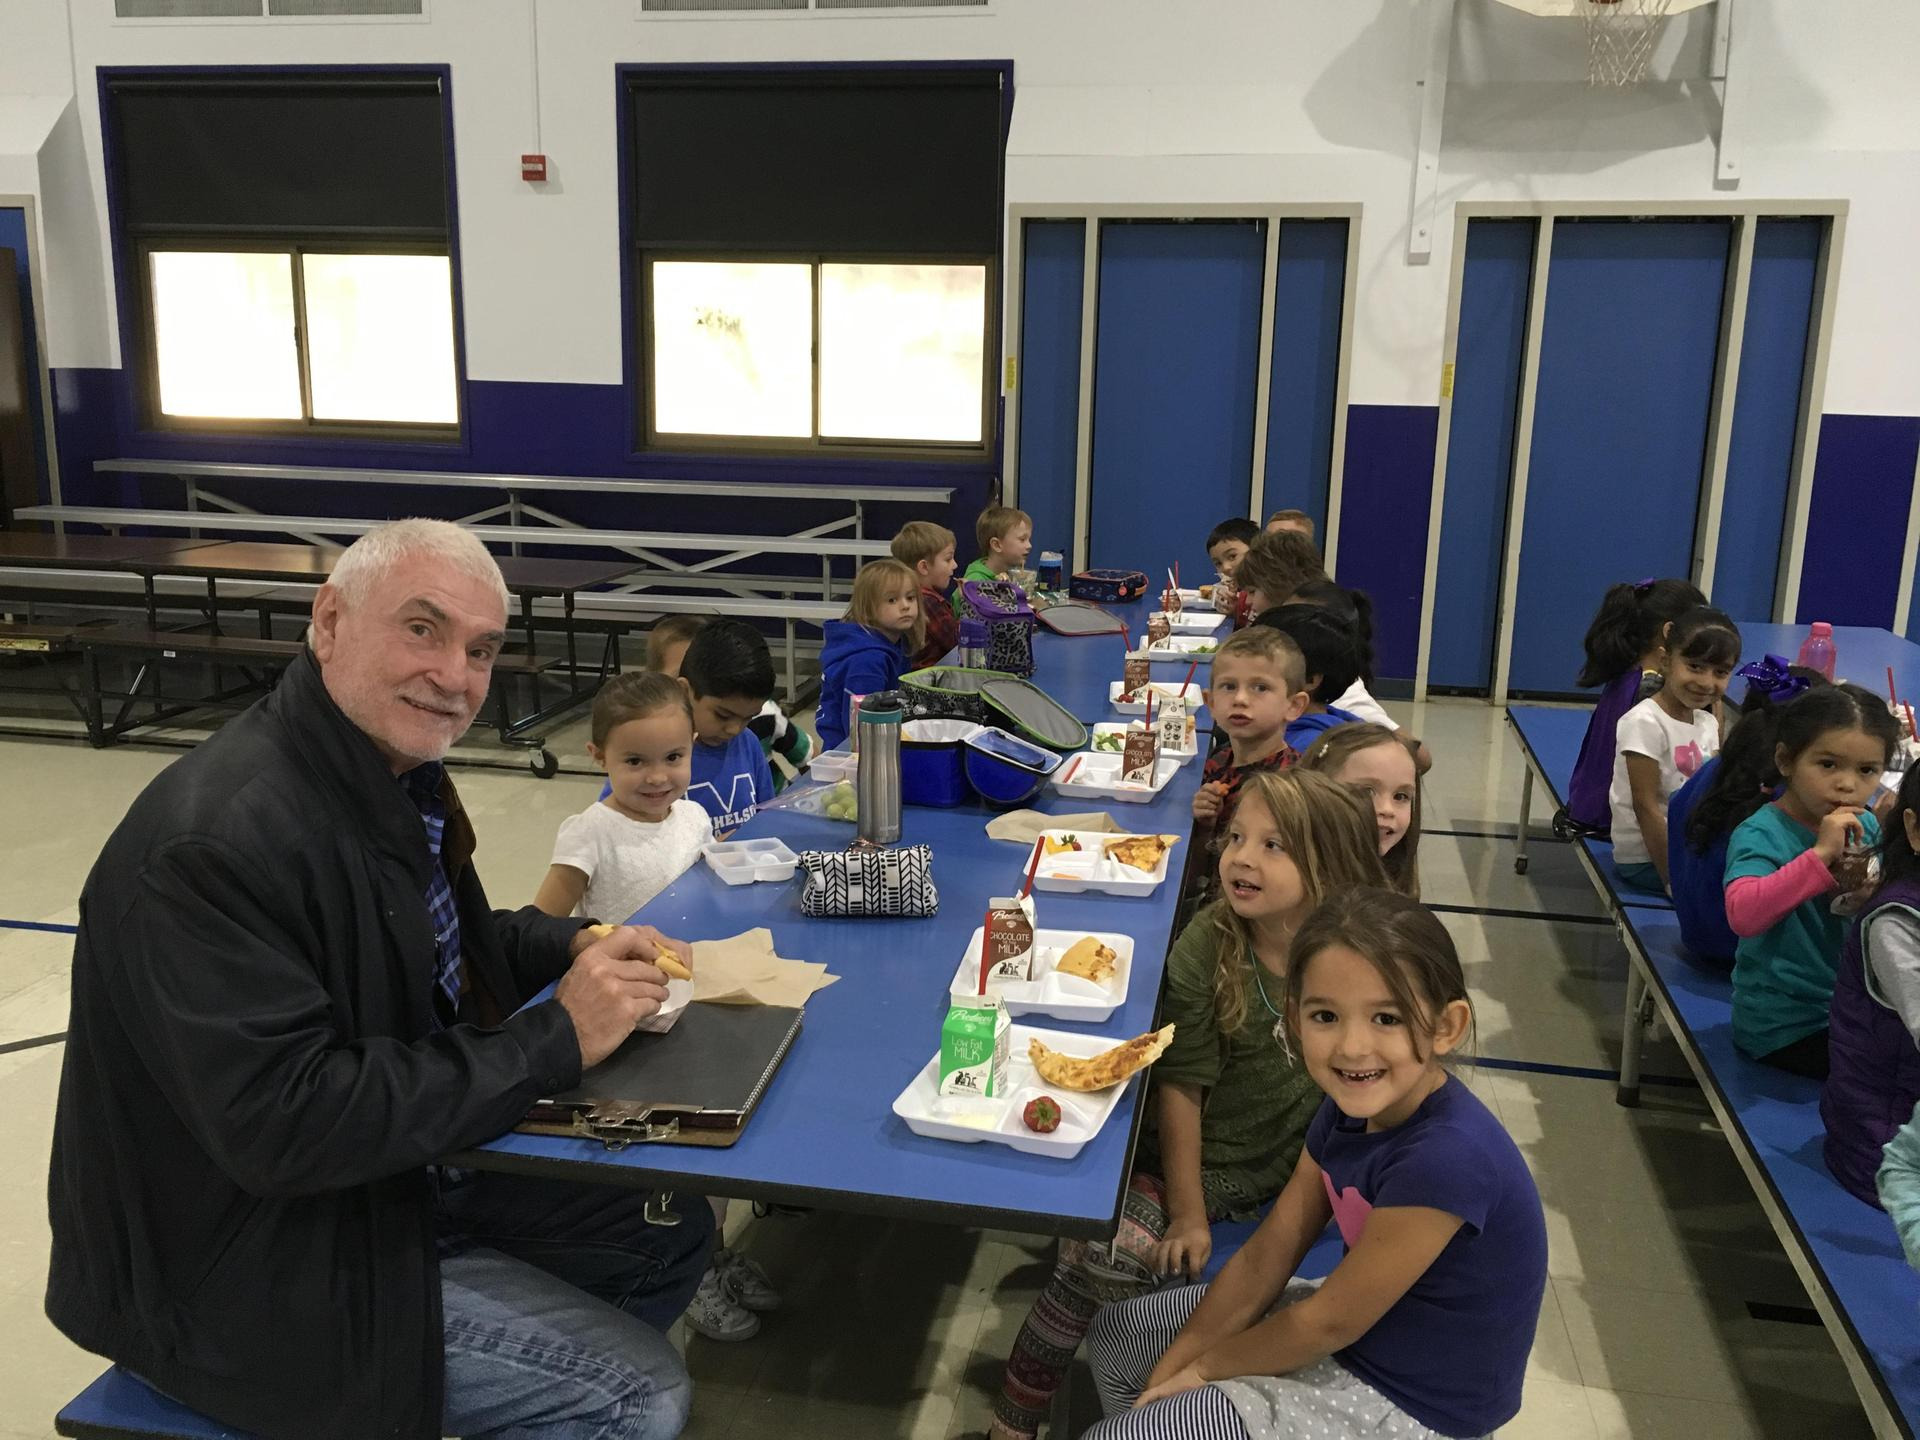 Mr Frost having lunch with students